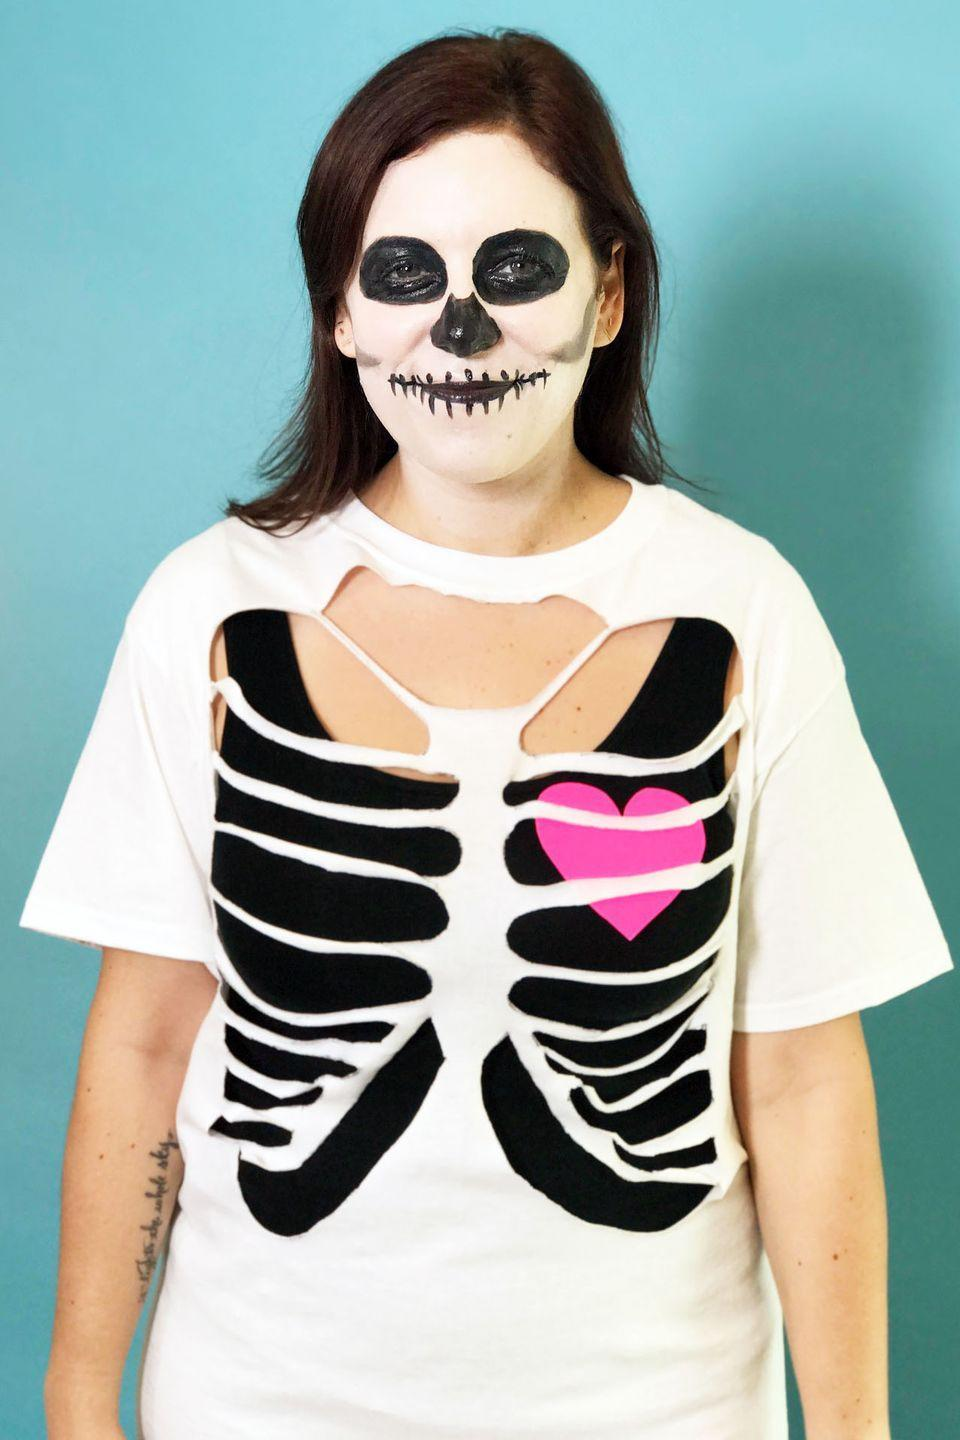 """<p>No high school flashbacks here: This last-minute costume takes a more subtle approach to anatomy. To make, cut out sections of a t-shirt to create a ribcage illusion, add some face paint, and stick on a paper heart for an especially adorable skeleton.</p><p><a class=""""link rapid-noclick-resp"""" href=""""https://www.amazon.com/Costumes-Occasions-DD451-Palette-Skeleton/dp/B000LNGBN6/?tag=syn-yahoo-20&ascsubtag=%5Bartid%7C10055.g.2750%5Bsrc%7Cyahoo-us"""" rel=""""nofollow noopener"""" target=""""_blank"""" data-ylk=""""slk:SHOP SKELETON MAKEUP KITS"""">SHOP SKELETON MAKEUP KITS</a></p><p><strong>RELATED:</strong> <a href=""""https://www.goodhousekeeping.com/holidays/halloween-ideas/a28088746/skeleton-face-paint-tutorial/"""" rel=""""nofollow noopener"""" target=""""_blank"""" data-ylk=""""slk:This Easy Skeleton Face Paint Tutorial Only Takes 10 Minutes"""" class=""""link rapid-noclick-resp"""">This Easy Skeleton Face Paint Tutorial Only Takes 10 Minutes</a></p>"""